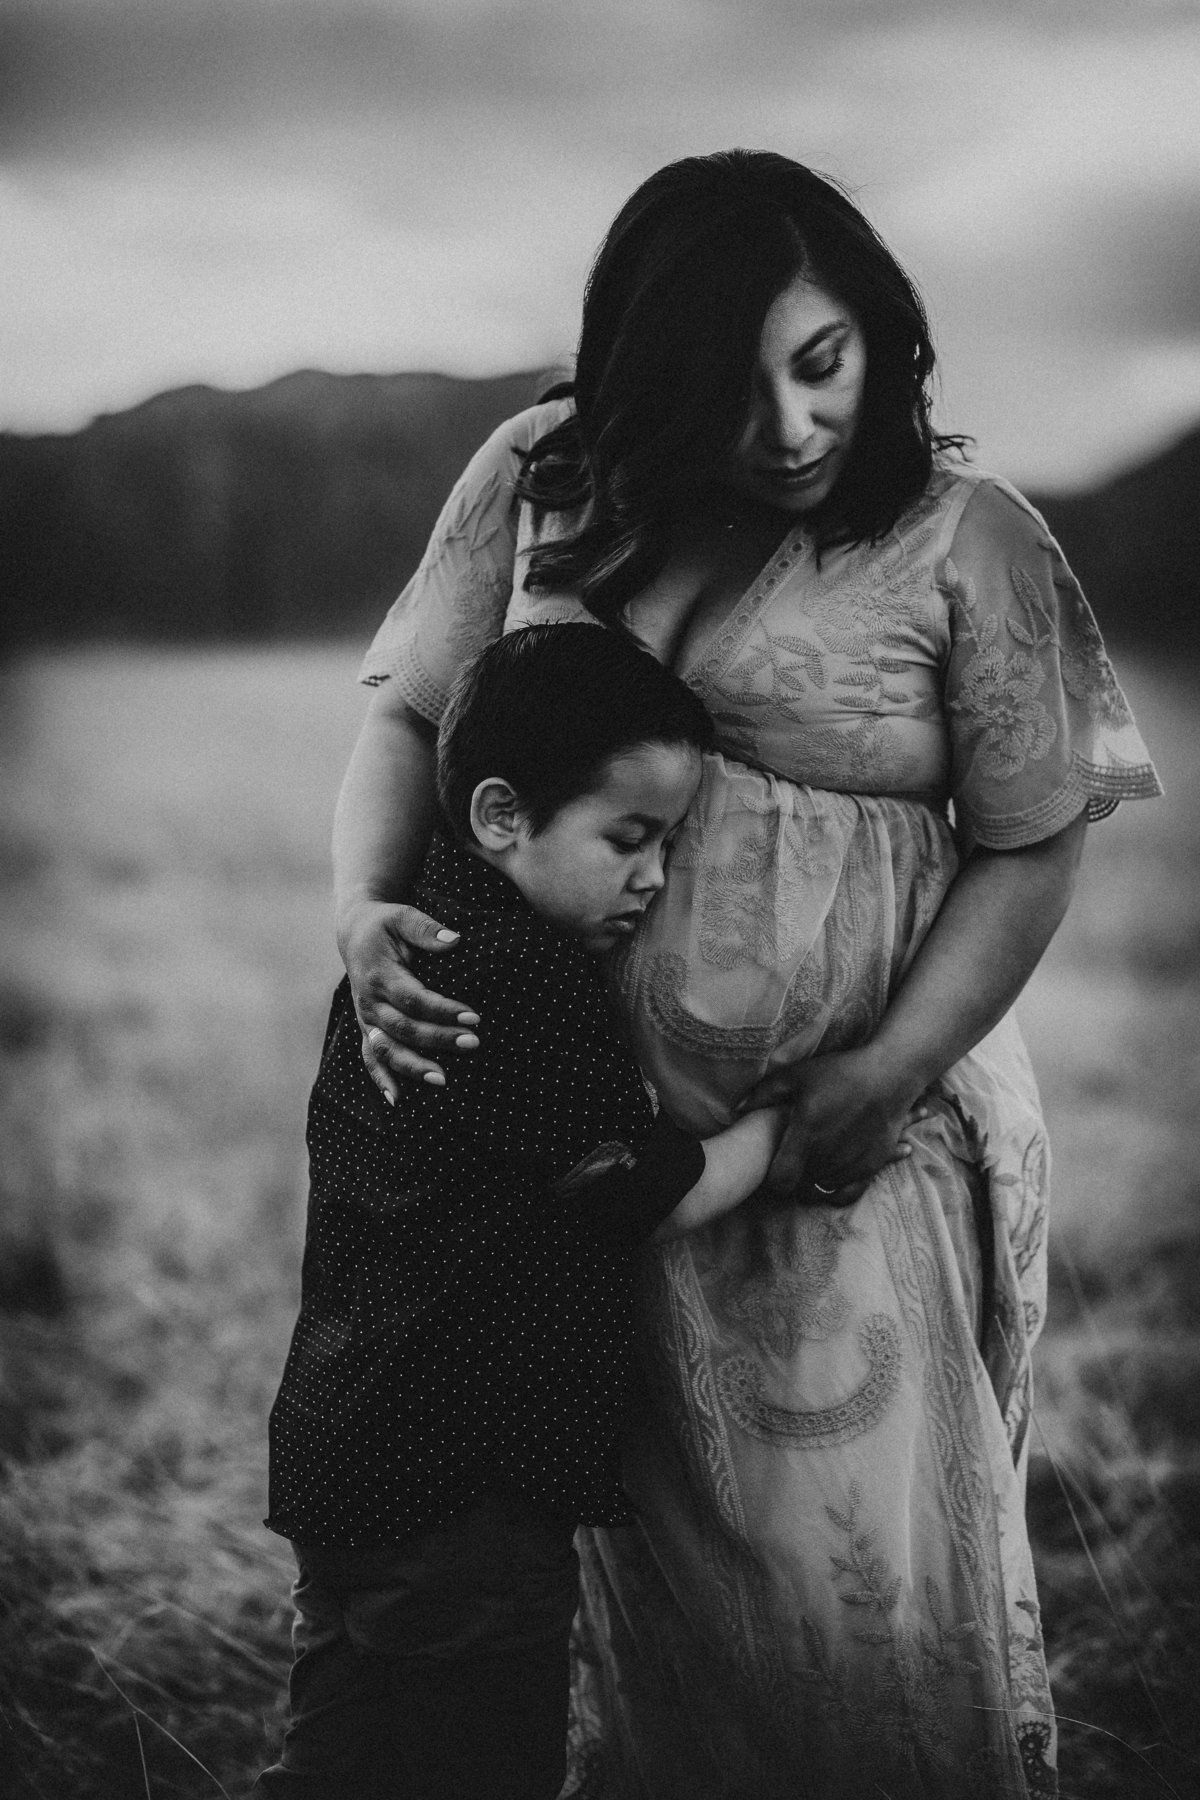 Outdoor family maternity pictures in Louisville Colorado at sunset